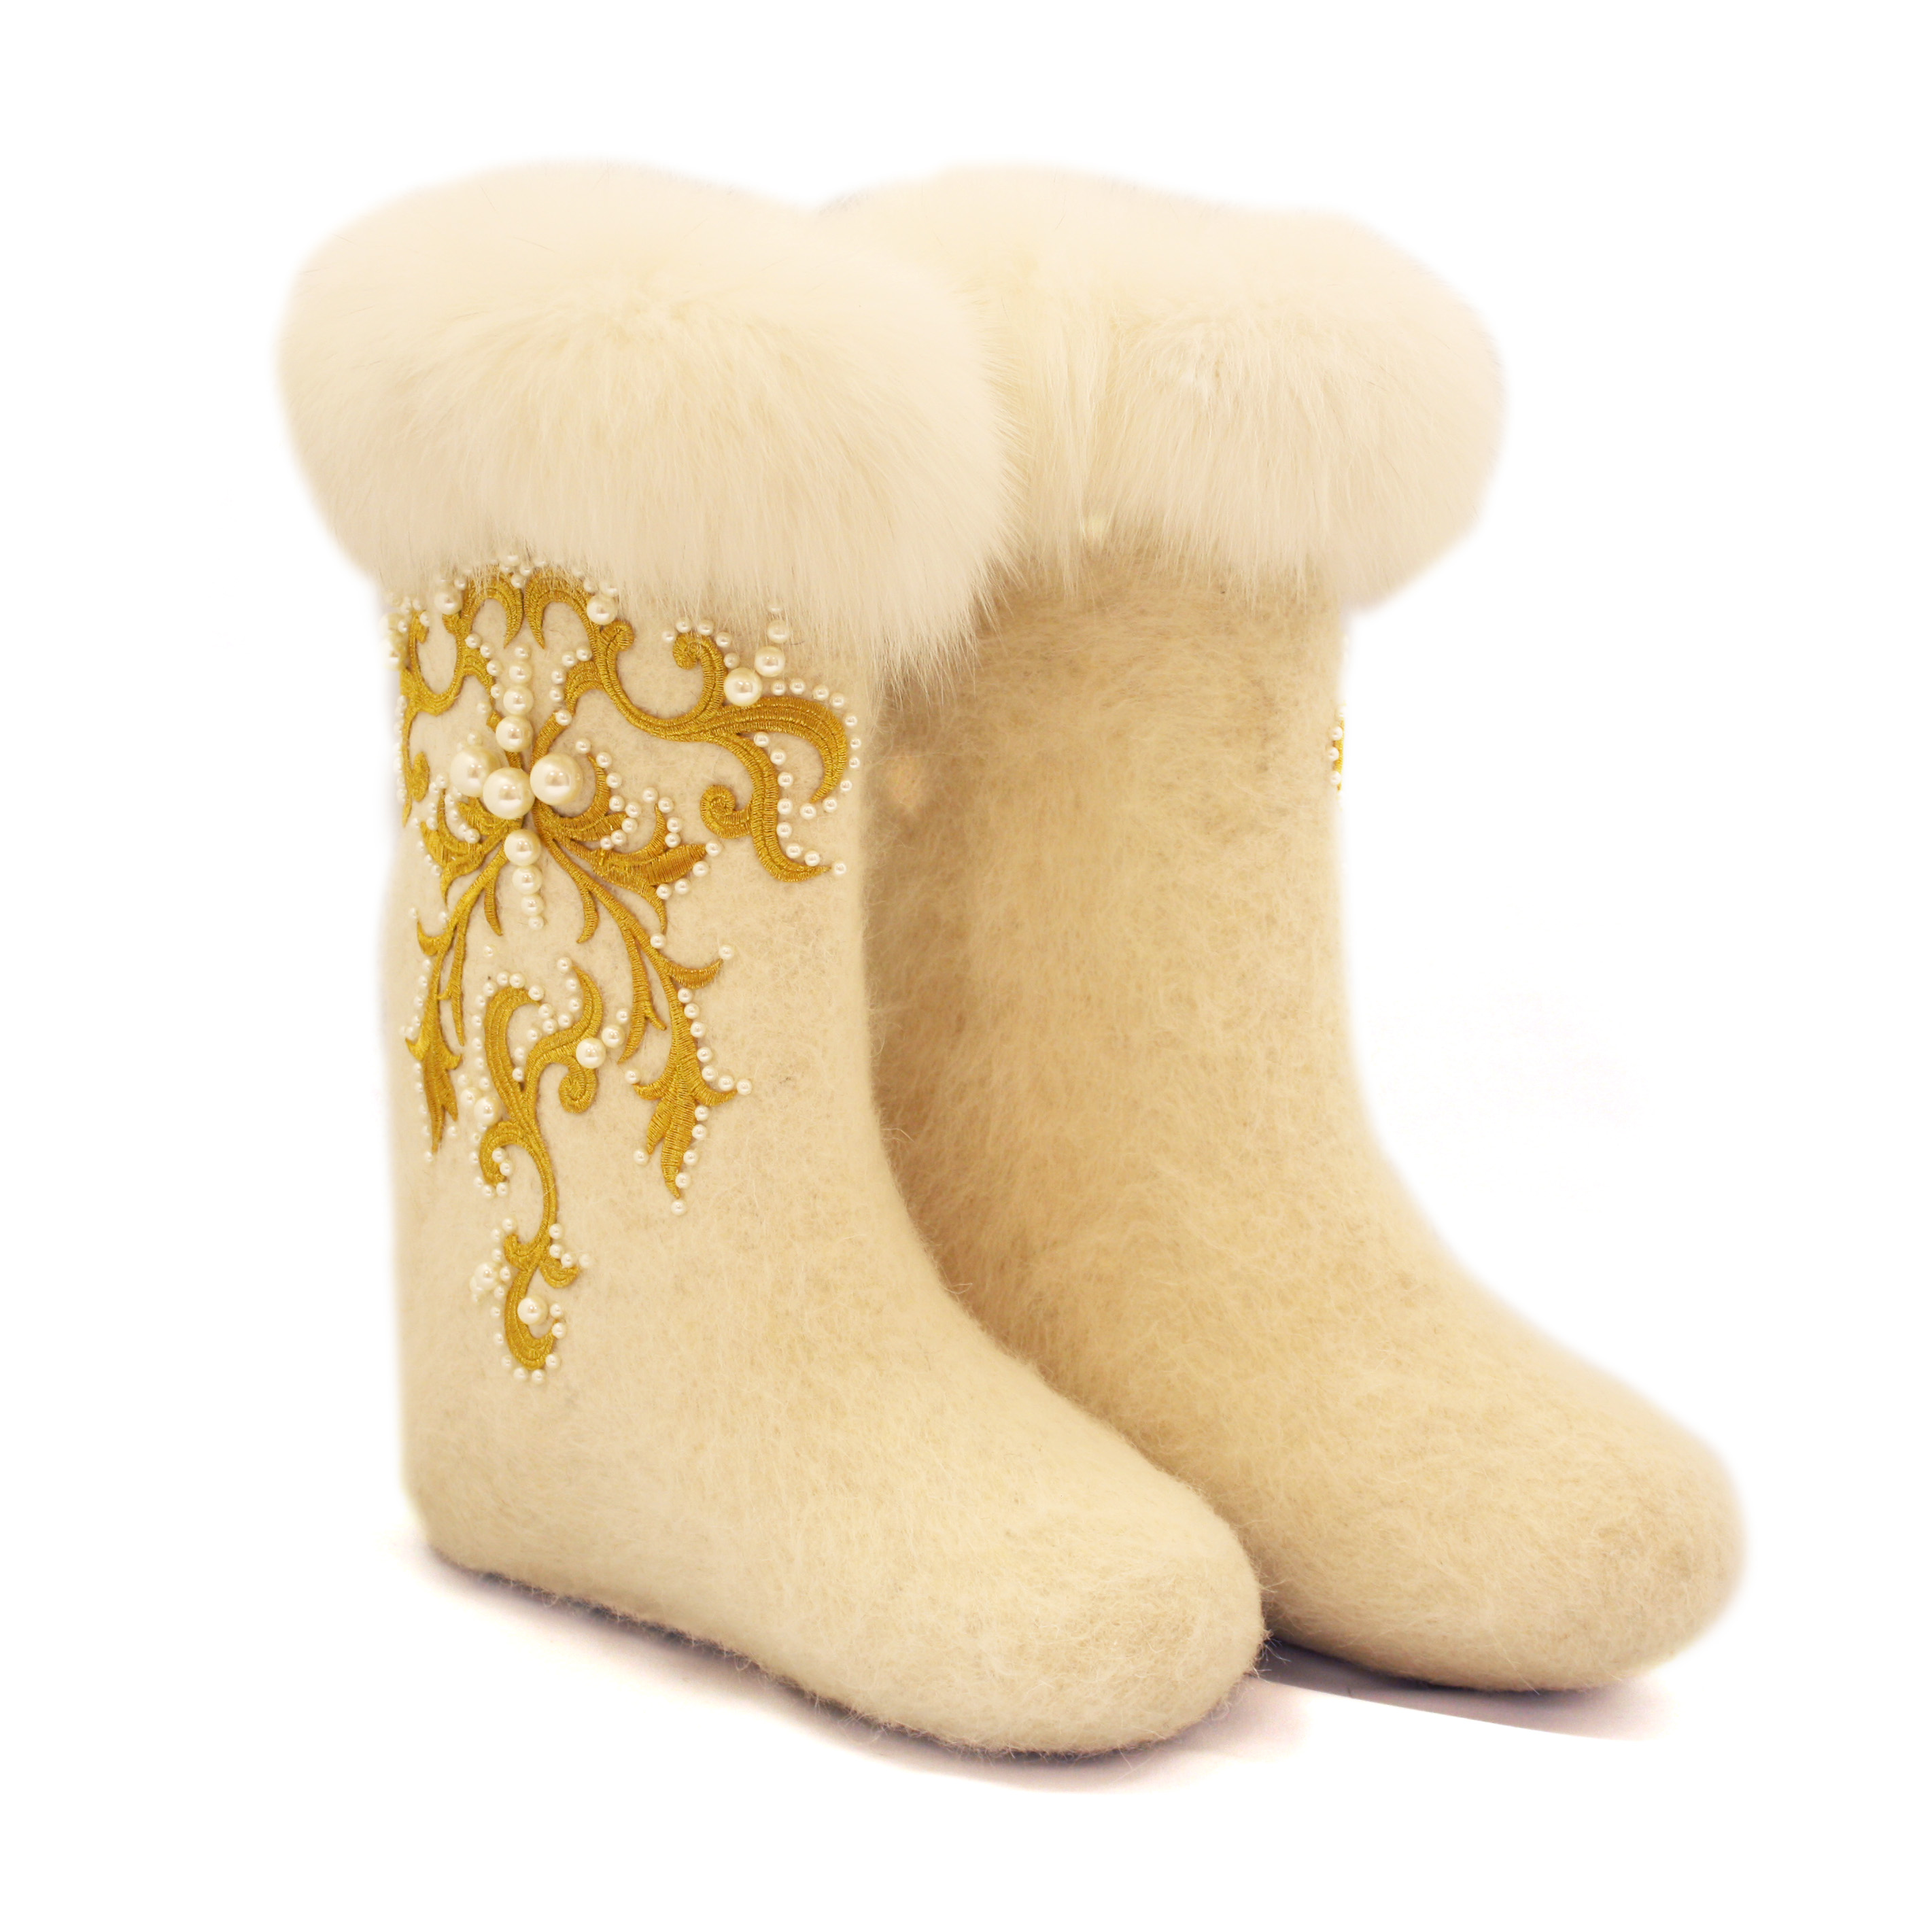 white Felt boots photos